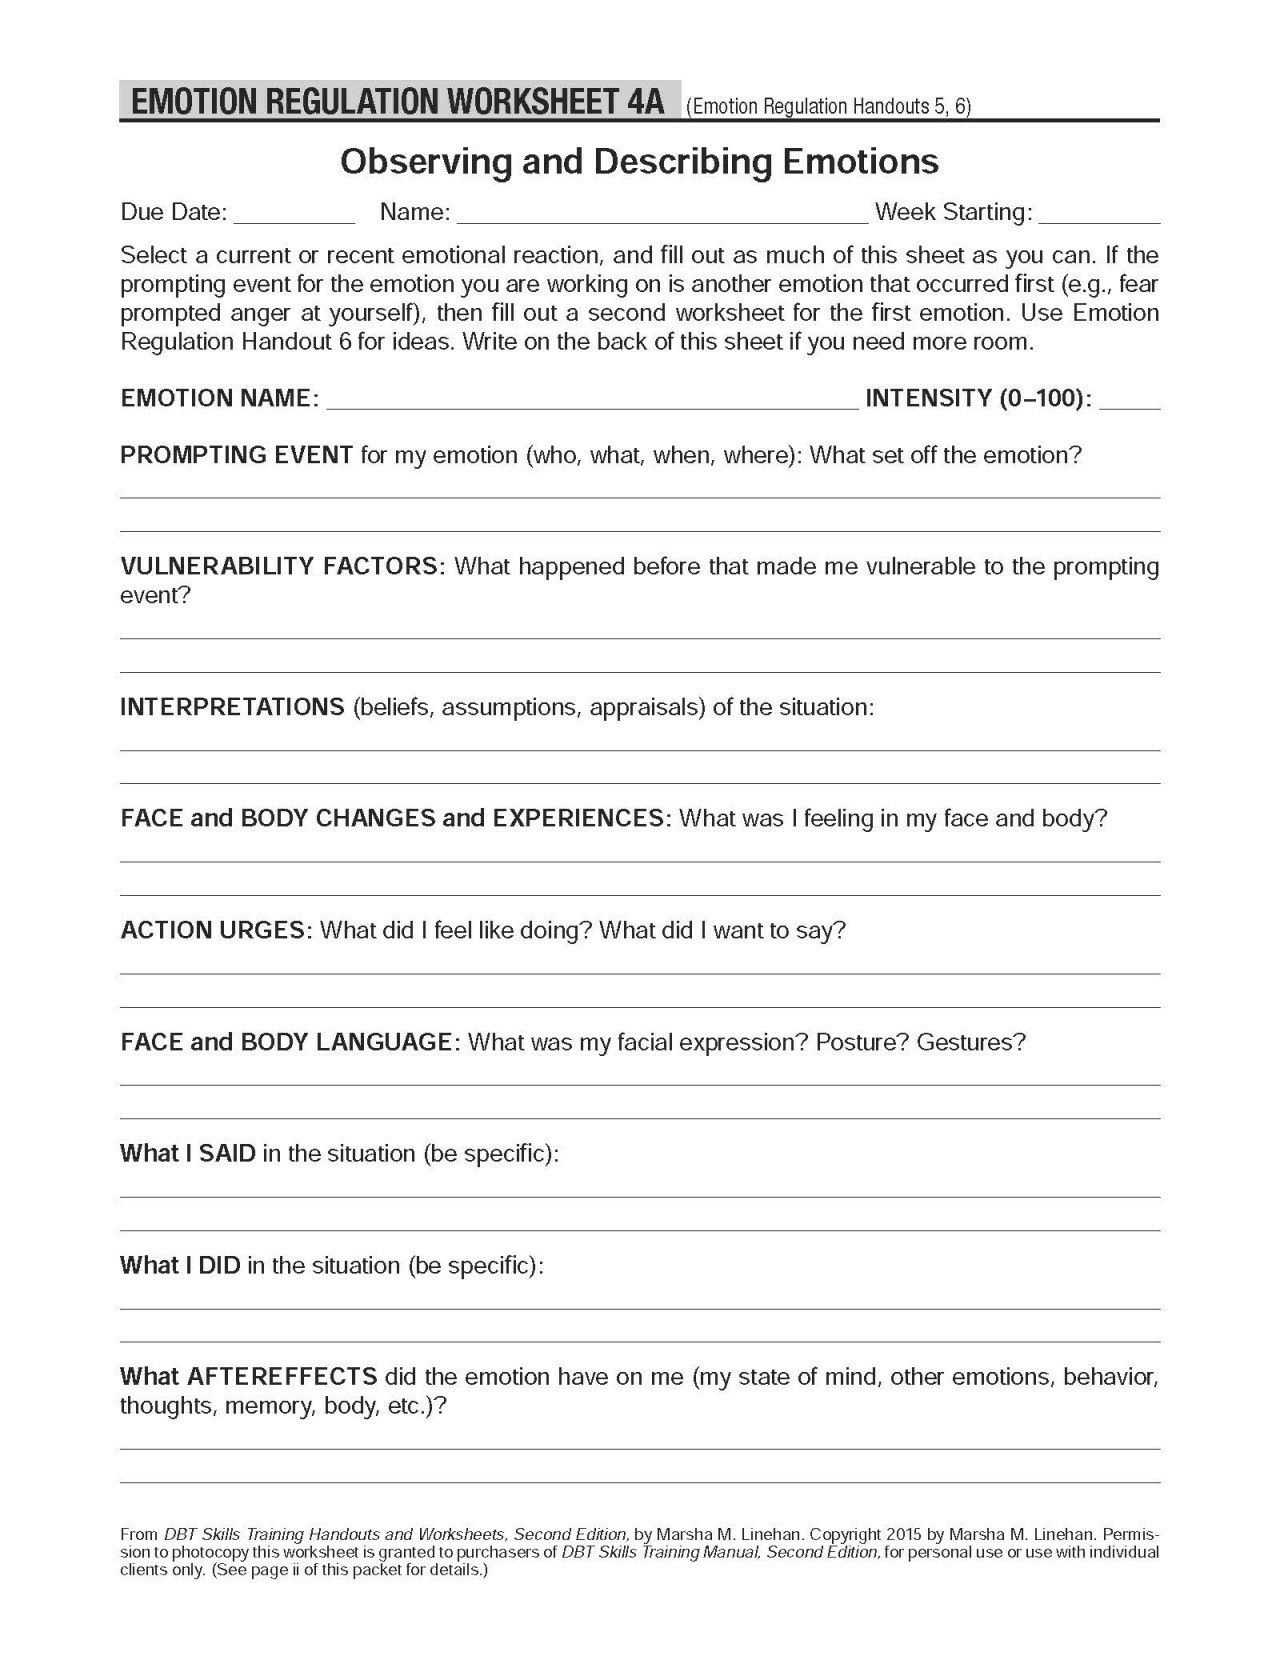 Pin By Stacy Alexander On Dbt Cbt Worksheets Resources